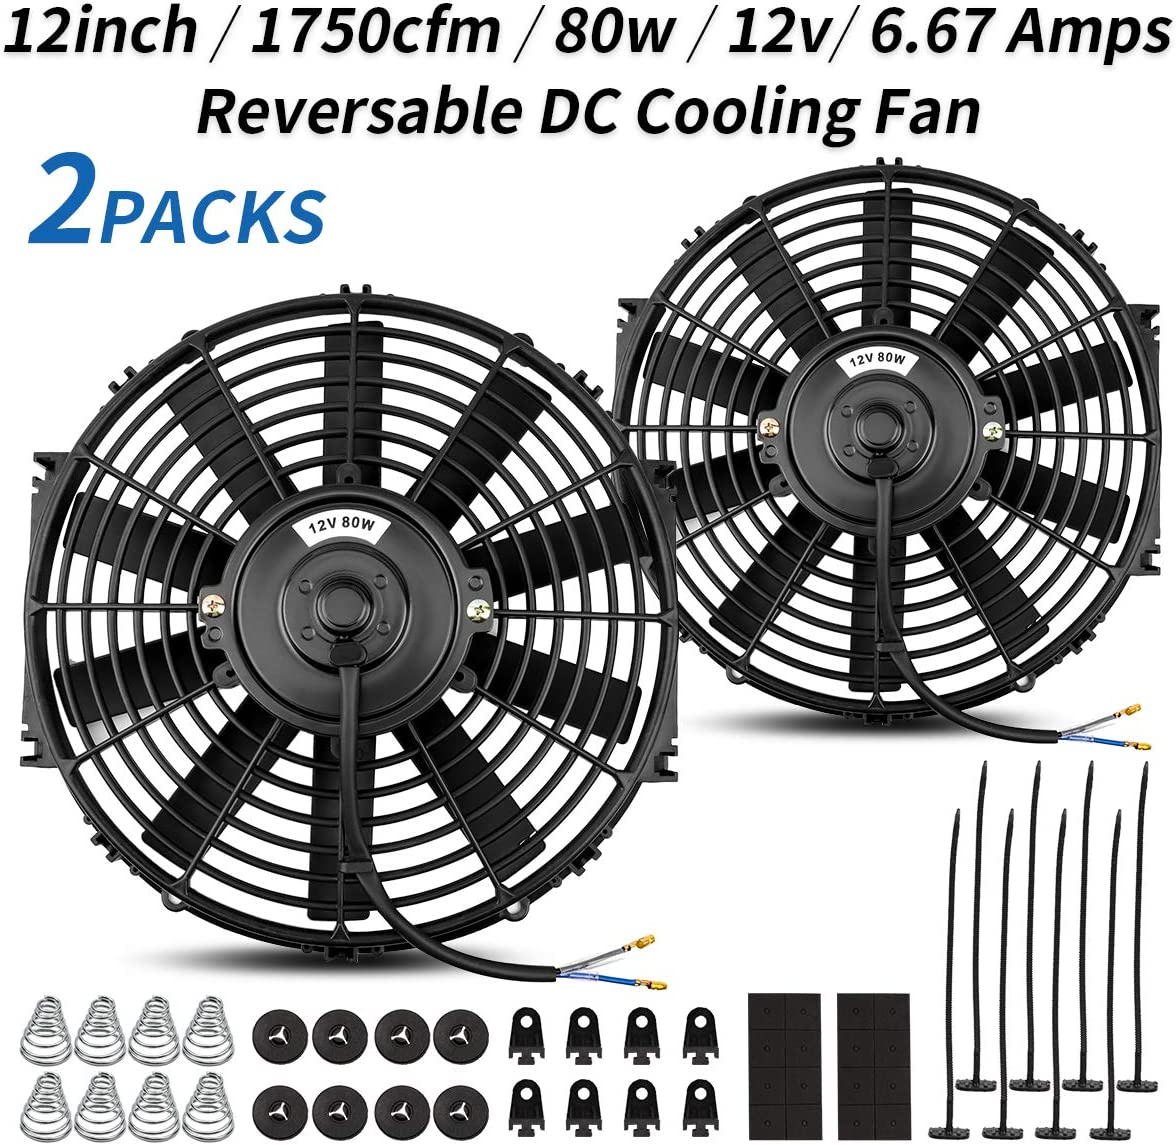 (2 Packs) Universal High Performance Reversible 2x12 Inch Electric Radiator Cooling Fan with Mounting Kit 1750 CFM 12 Volts 6.67 Amps 80 Watts